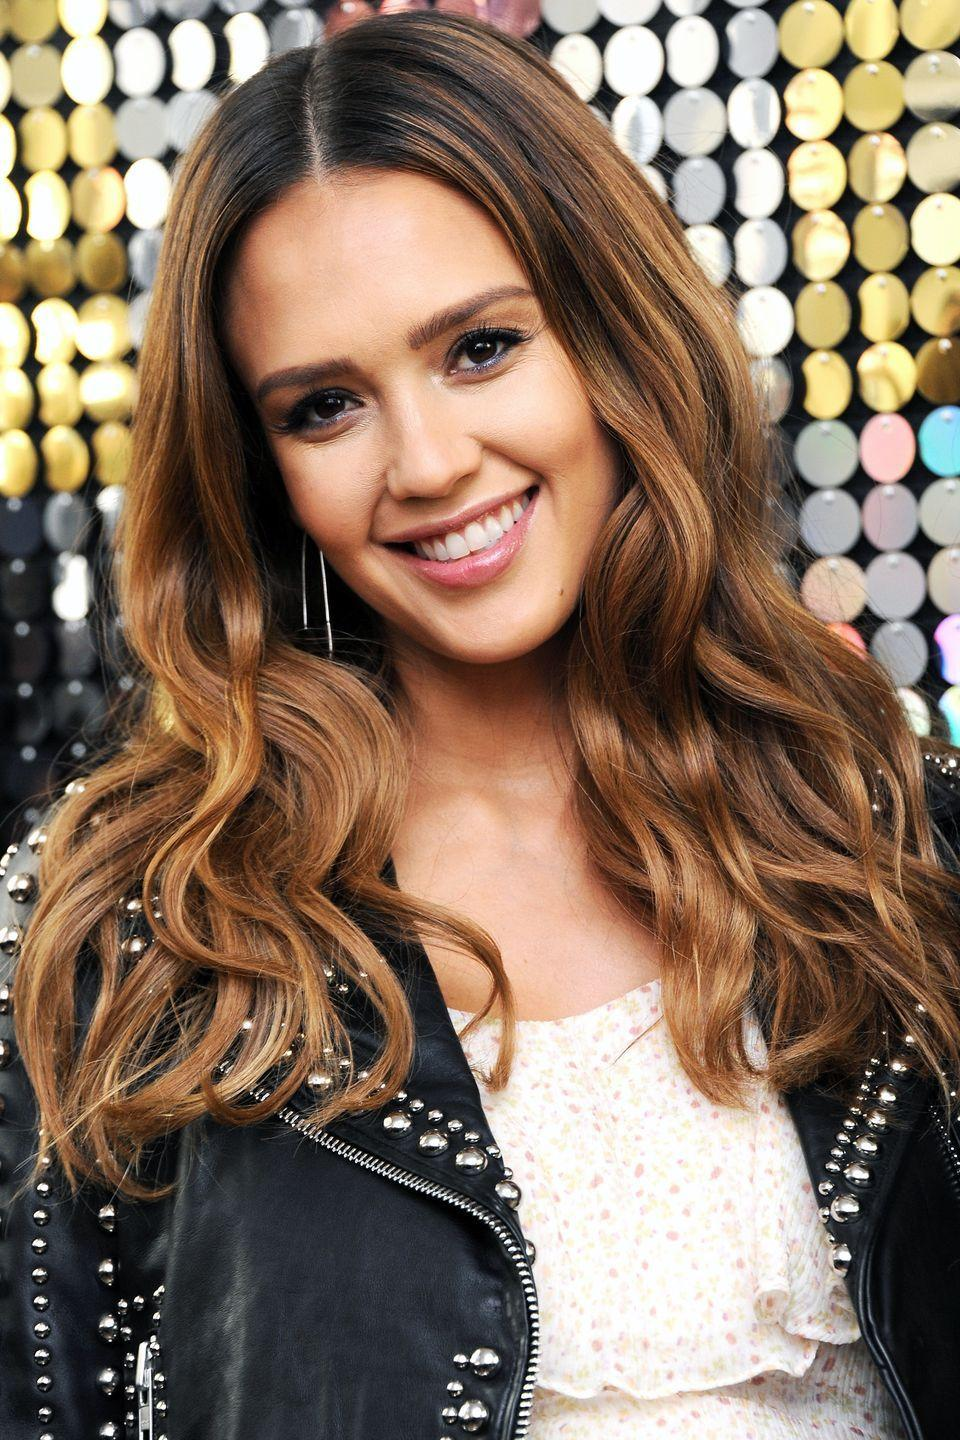 <p>Jessica Alba may very well be addicted to highlights. No matter how her hairstyle has changed over the last decade, she always seems to have multi-tonal dimension.</p>